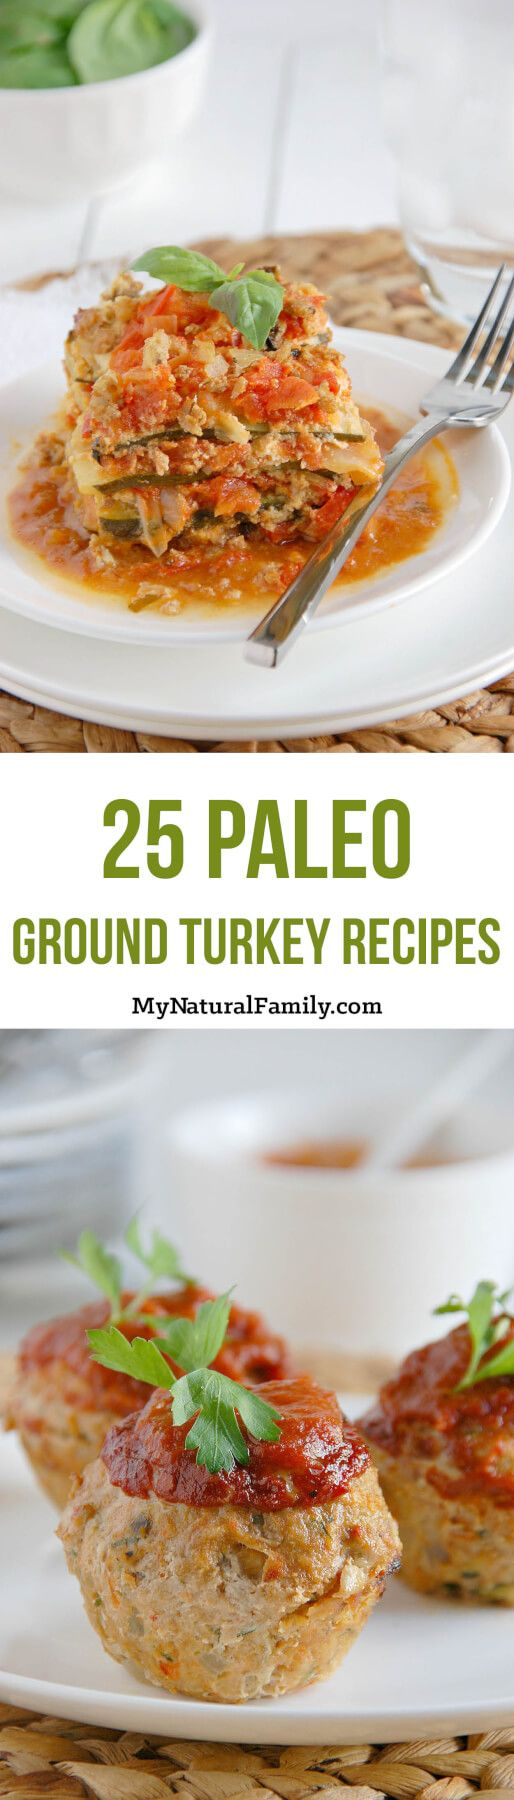 You have to admit - it's hard to find true Paleo ground turkey recipes. We have 25 of them from Taco Salad, Burgers, Meatballs, Meatloaf and Goulash.